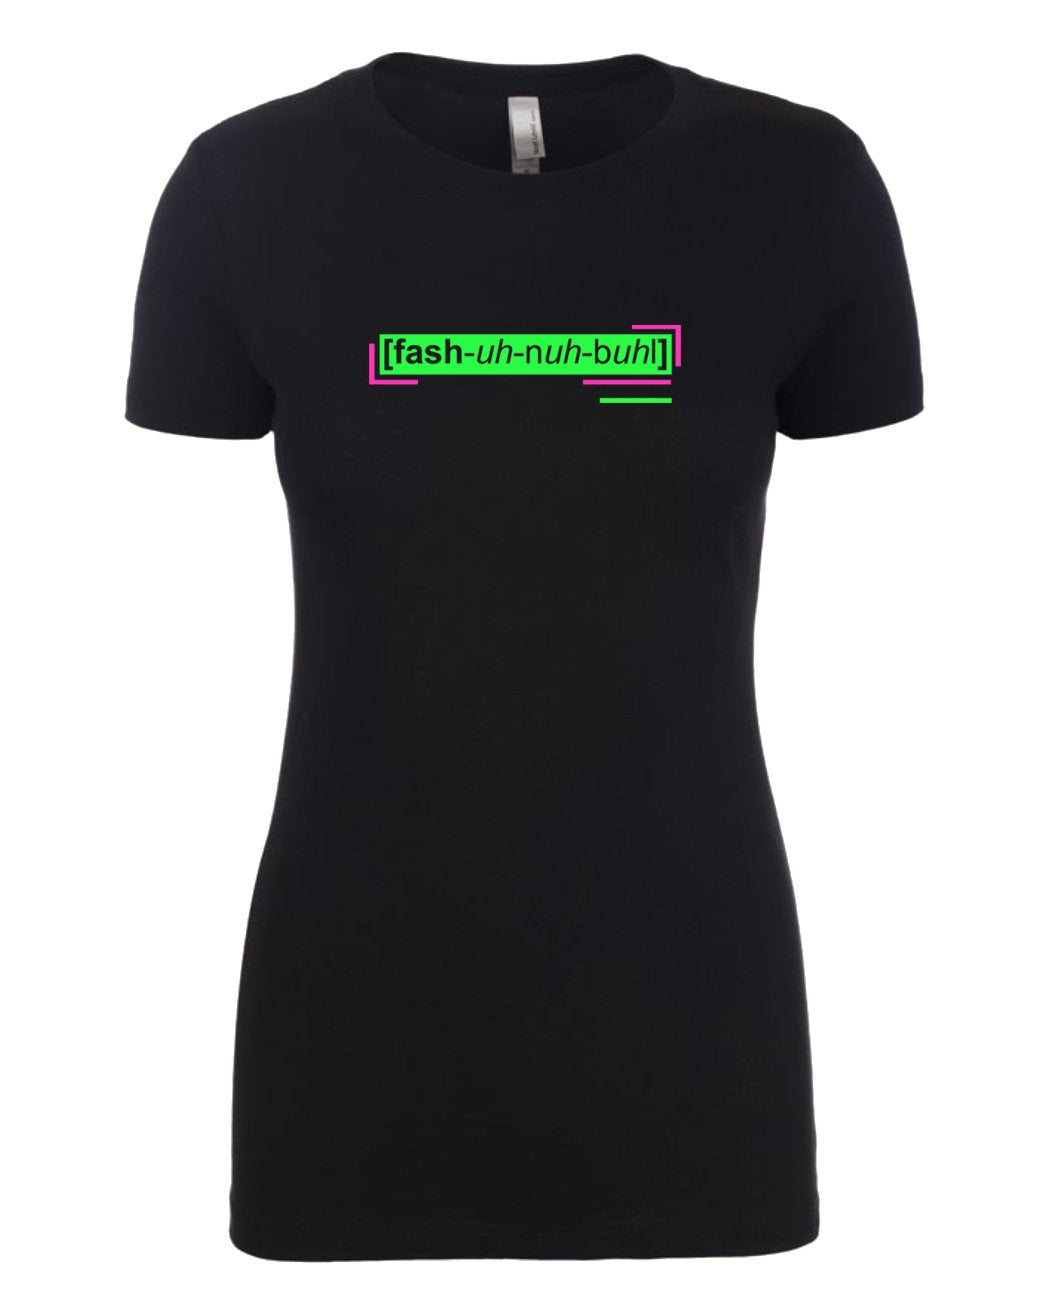 florescent green fashionable neon streetwear t shirt for women